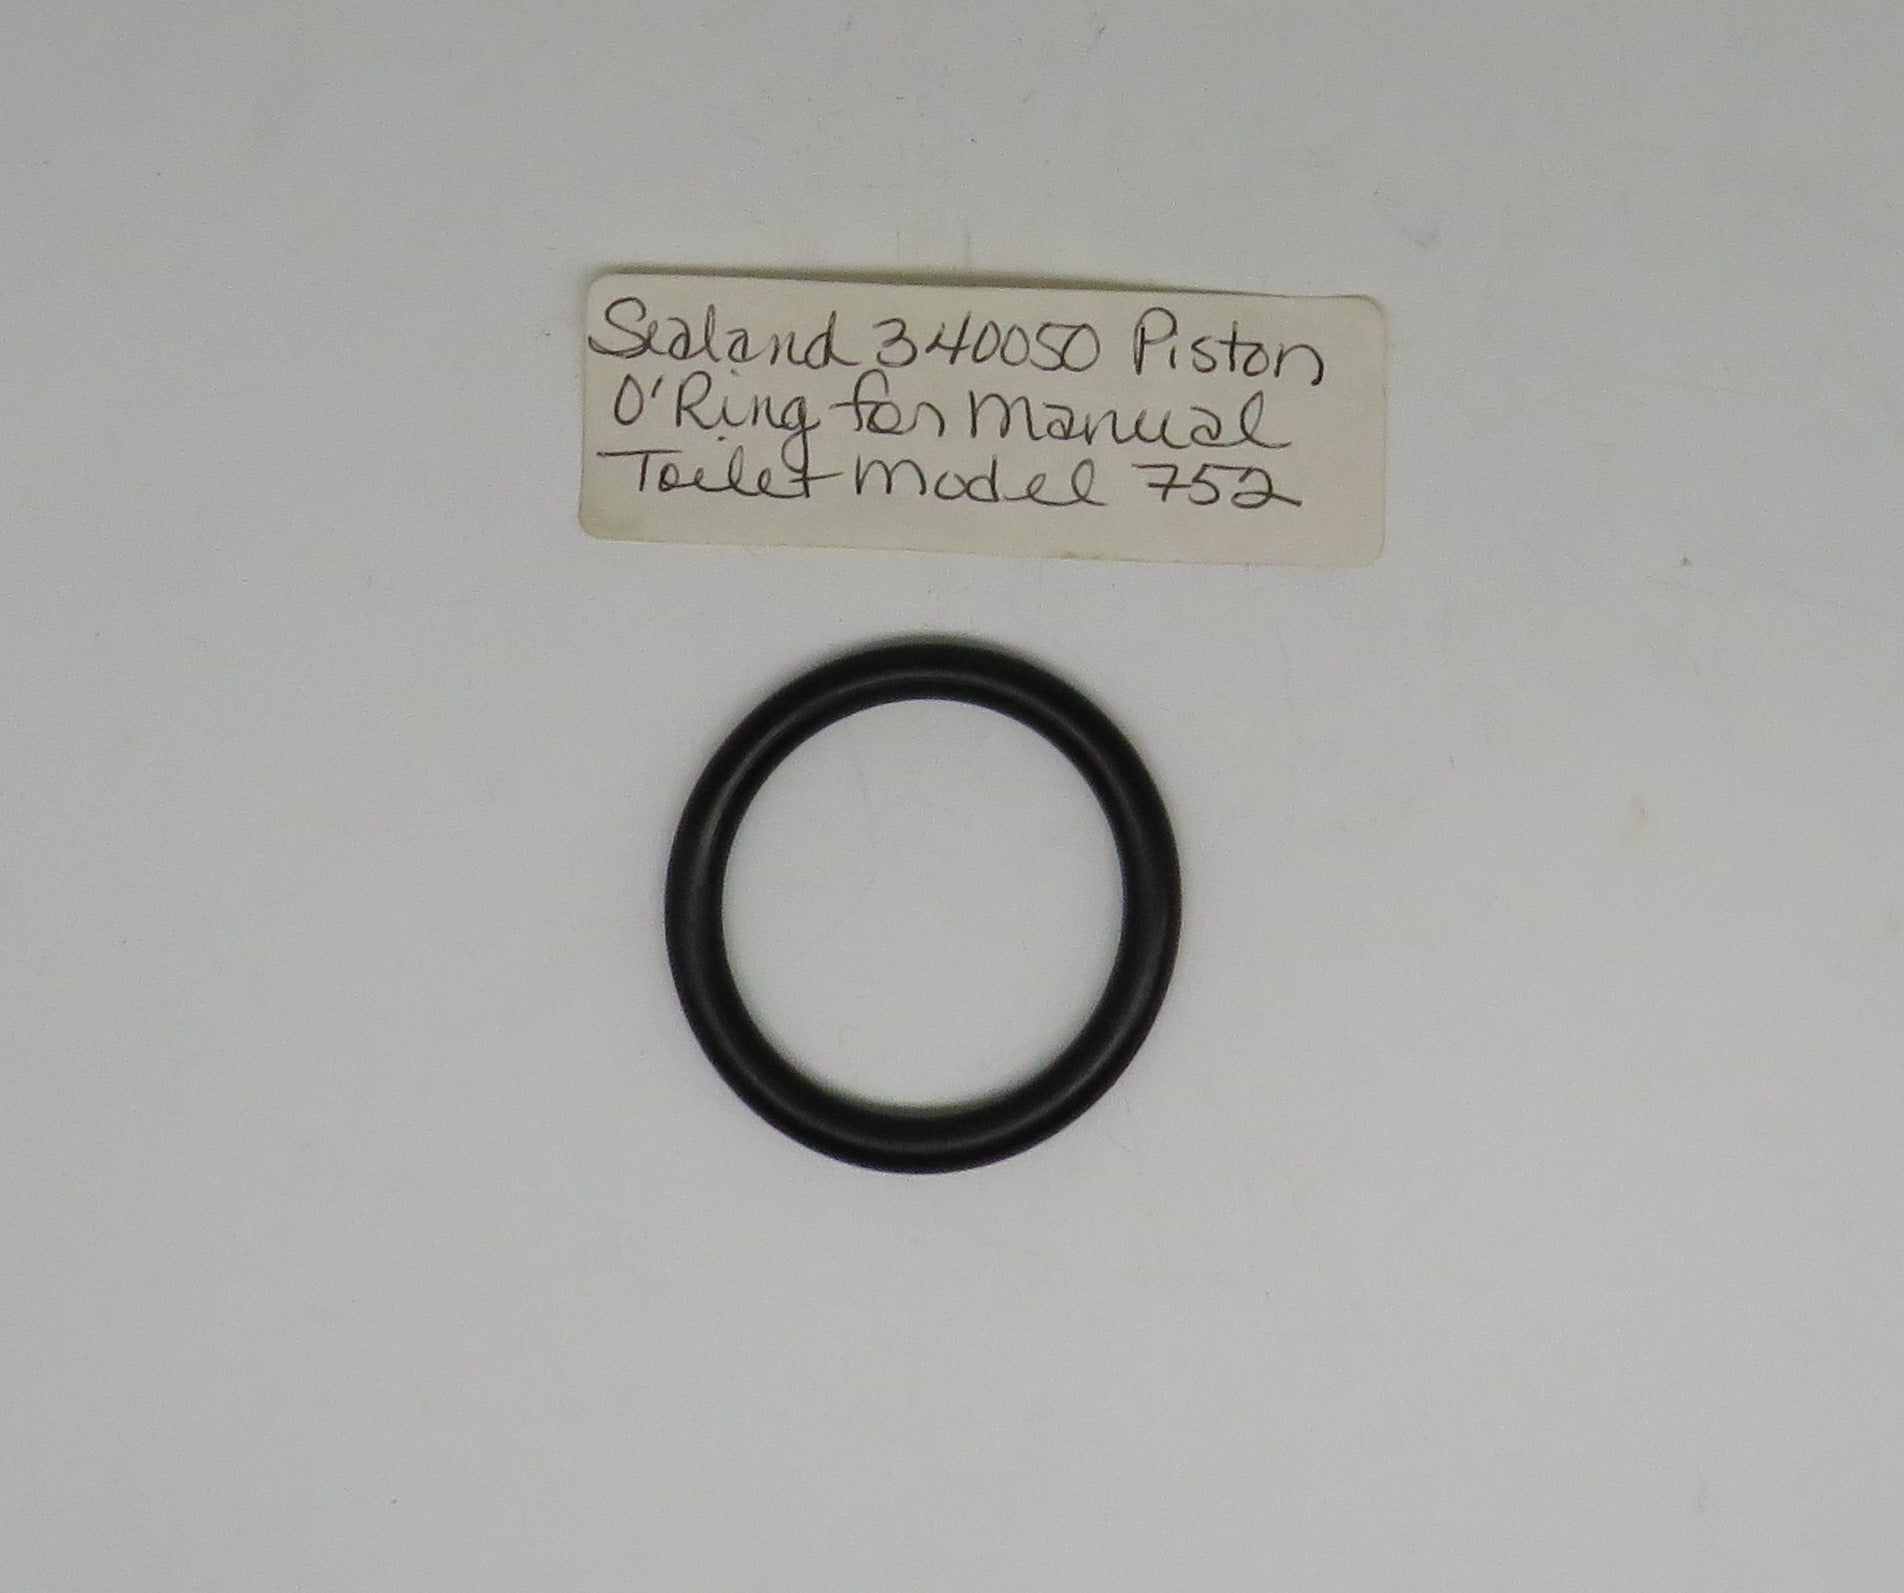 340050 Sealand Dometic Piston O-Ring for Manual Toilet Model 752 (OBSOLETE)